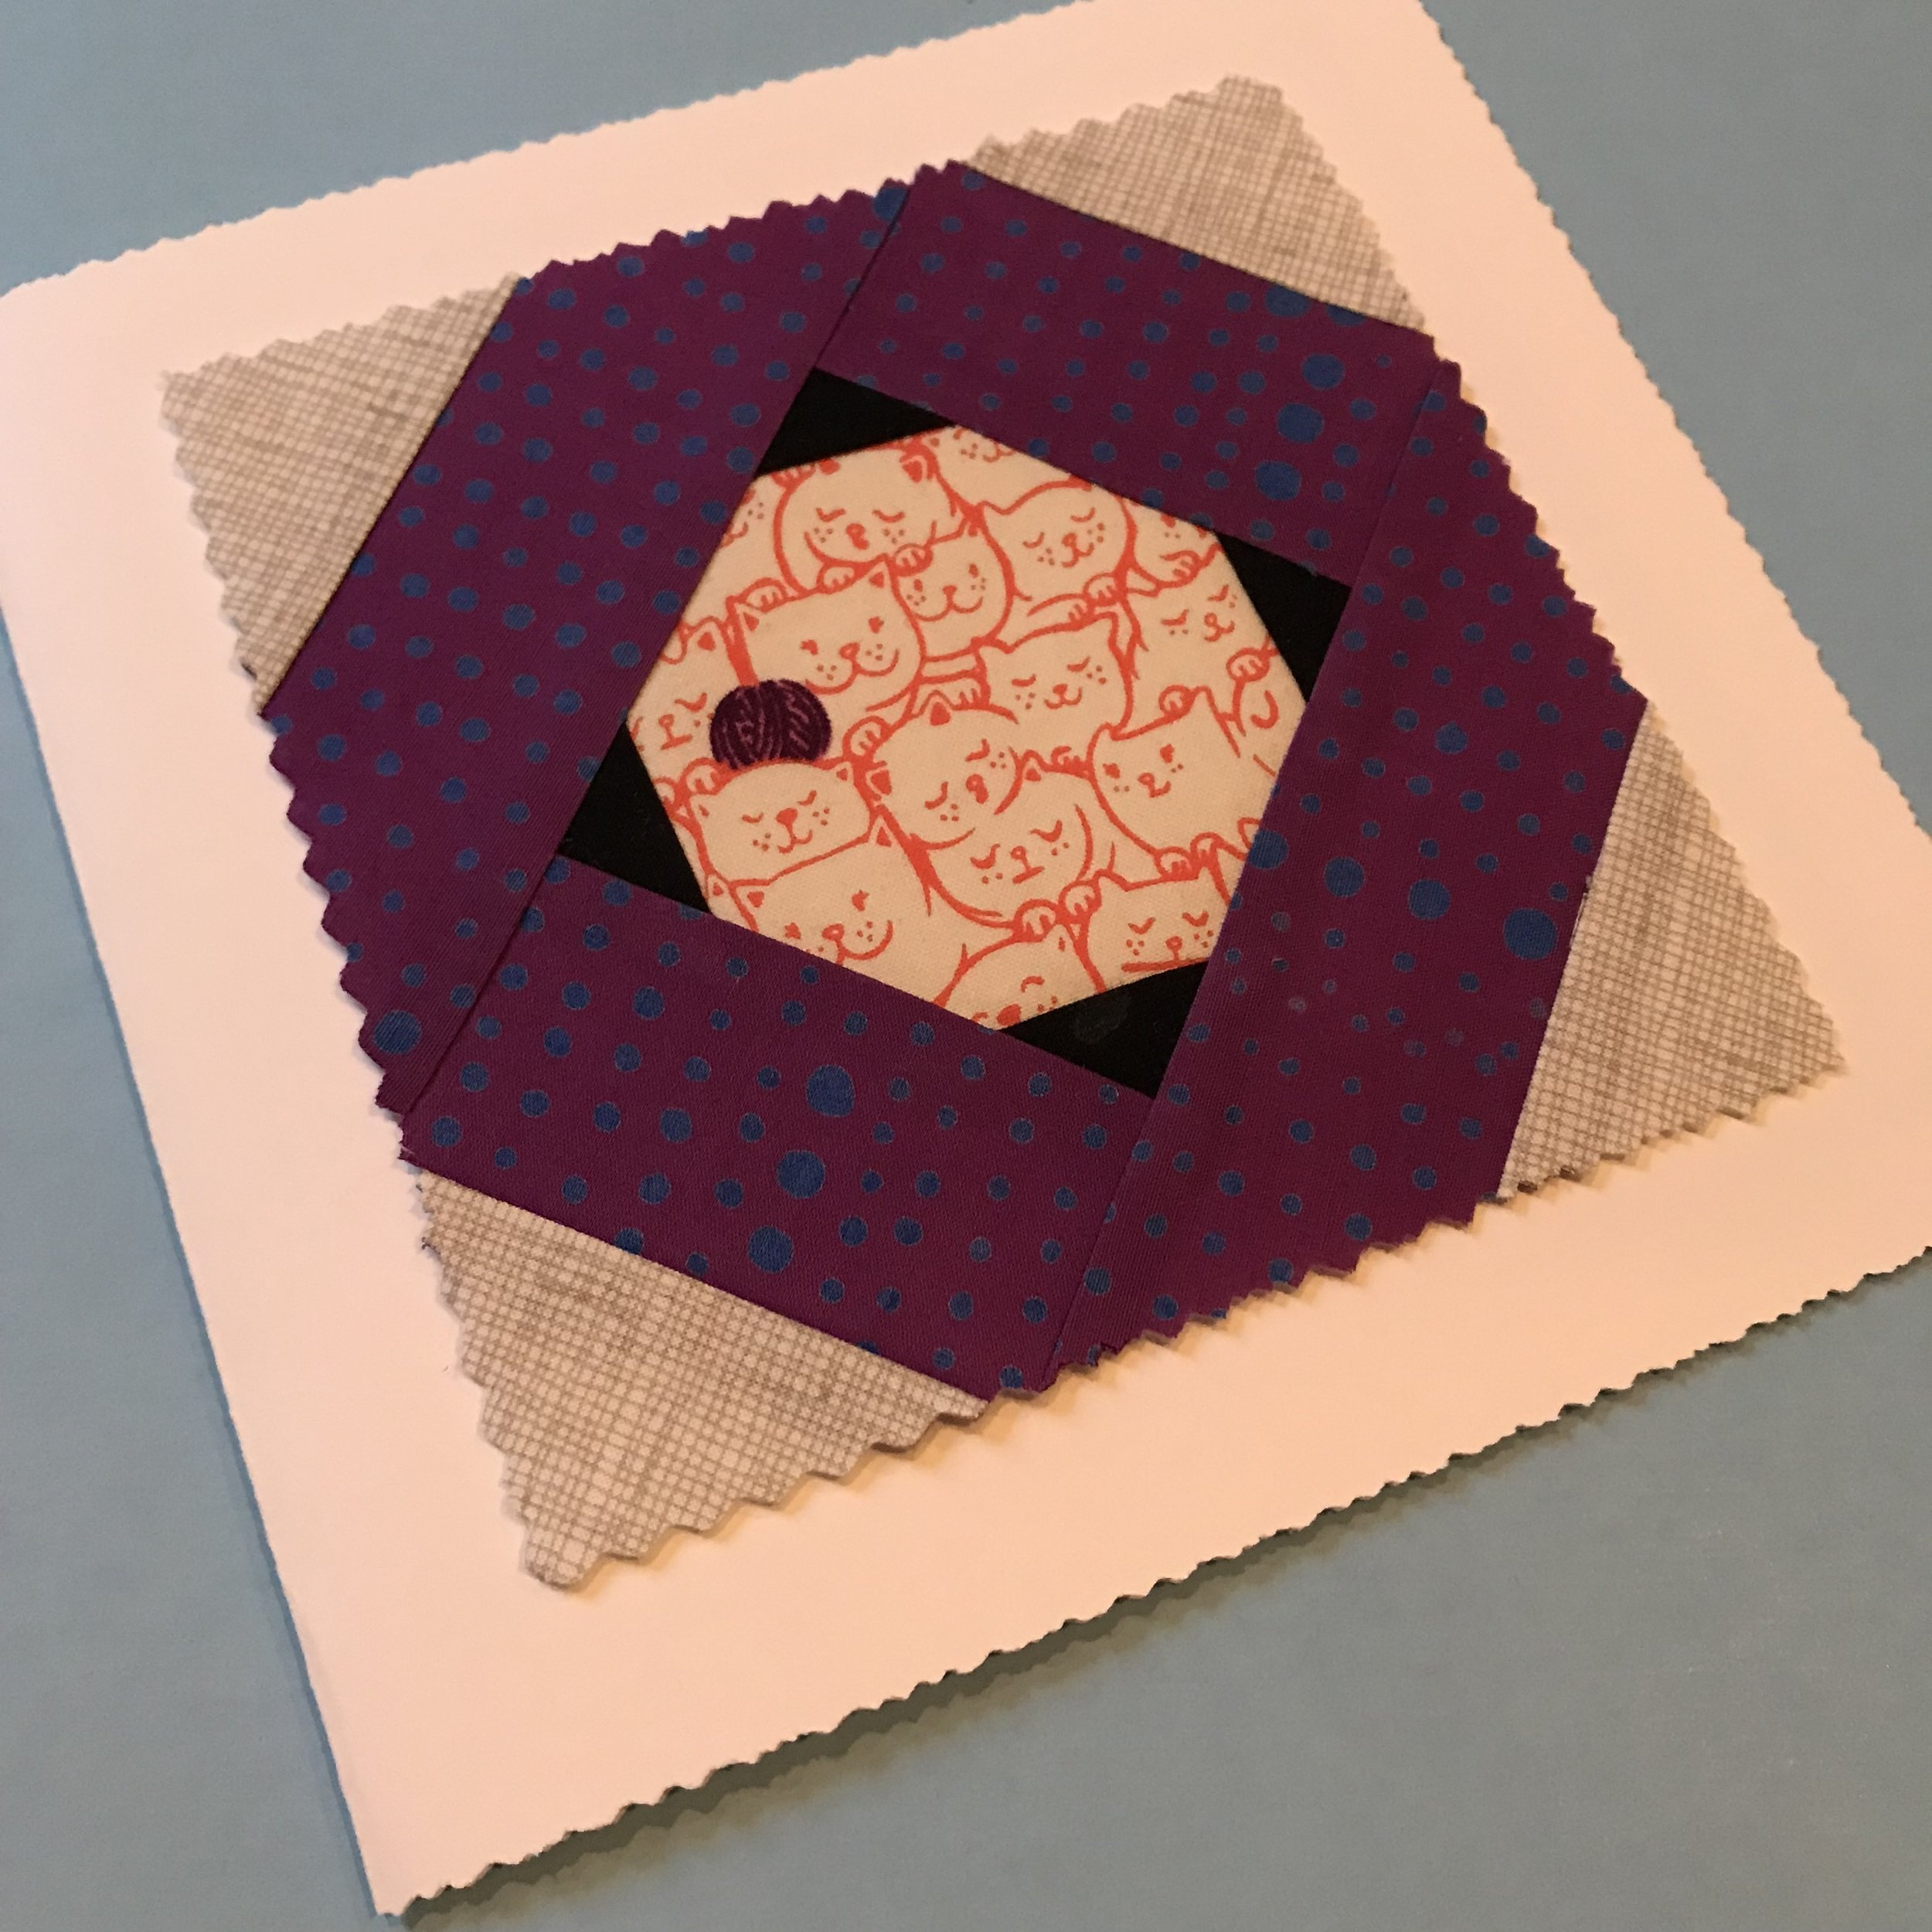 An extra block mades a lovely card